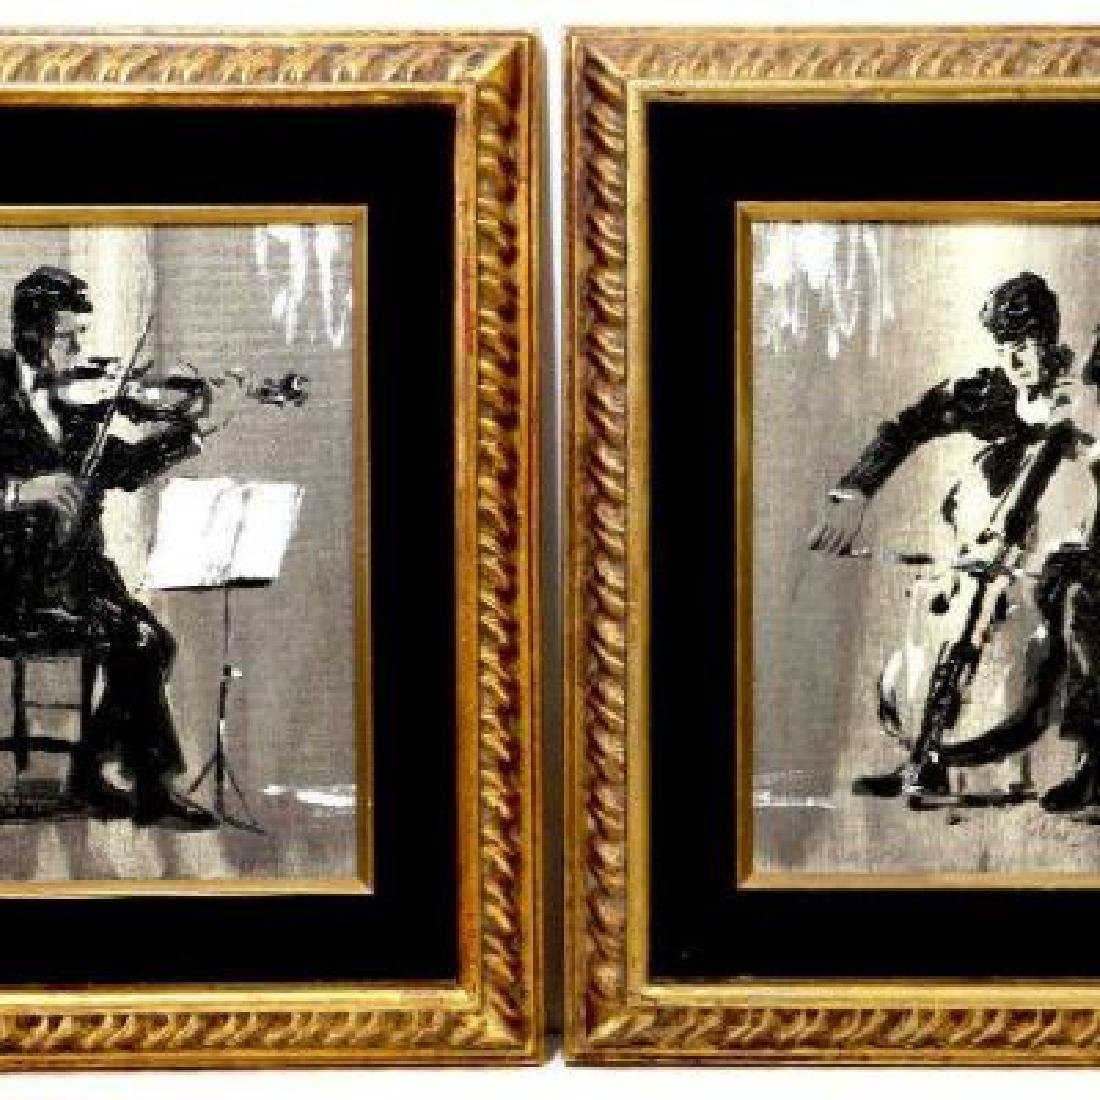 2 Original Oil Paintings on Canvas with Musicians